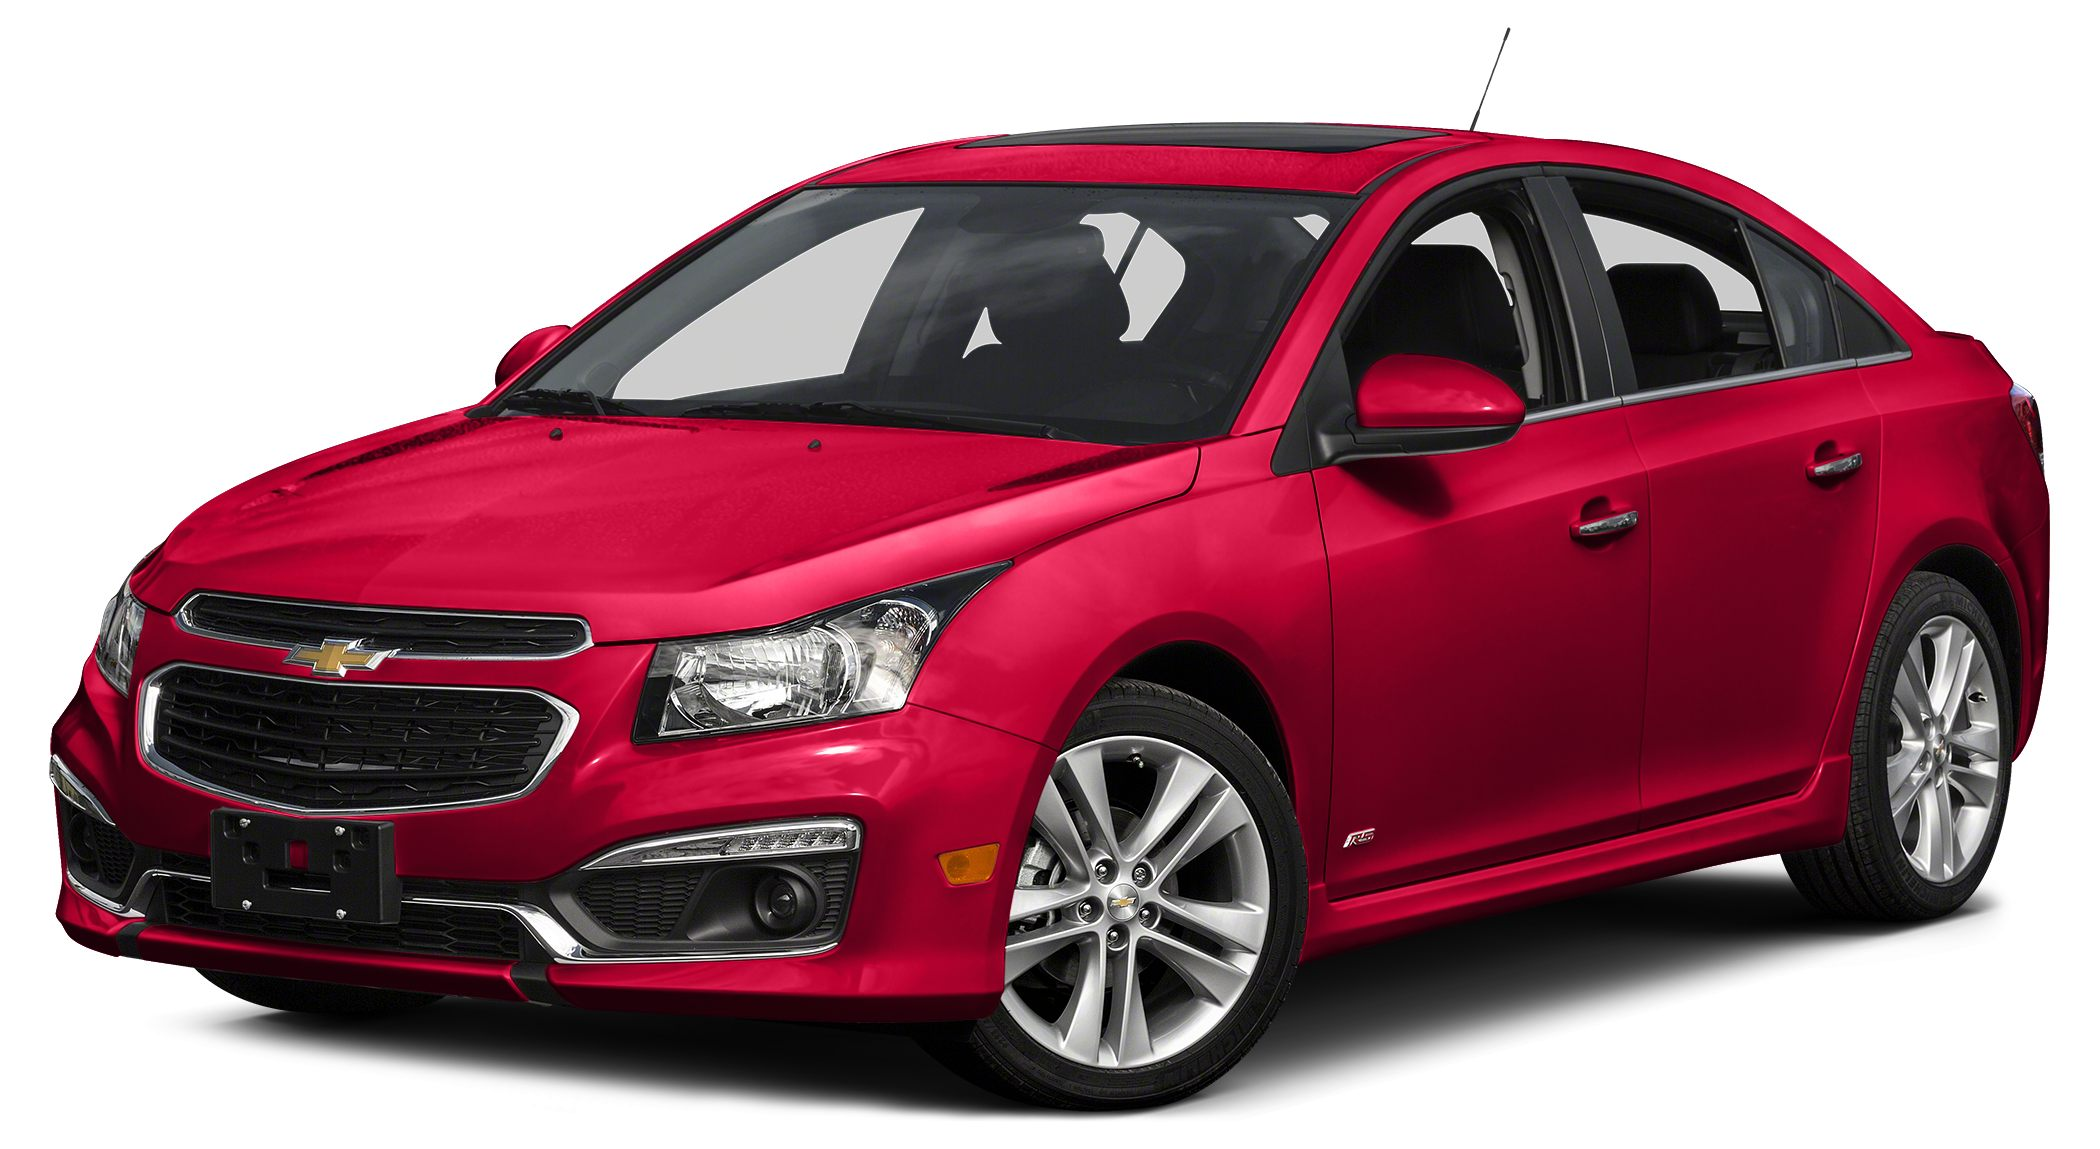 2016 Chevrolet Cruze Limited 1LT Miles 11Color Siren Red Tintcoat Stock 5983 VIN 1G1PE5SB4G7